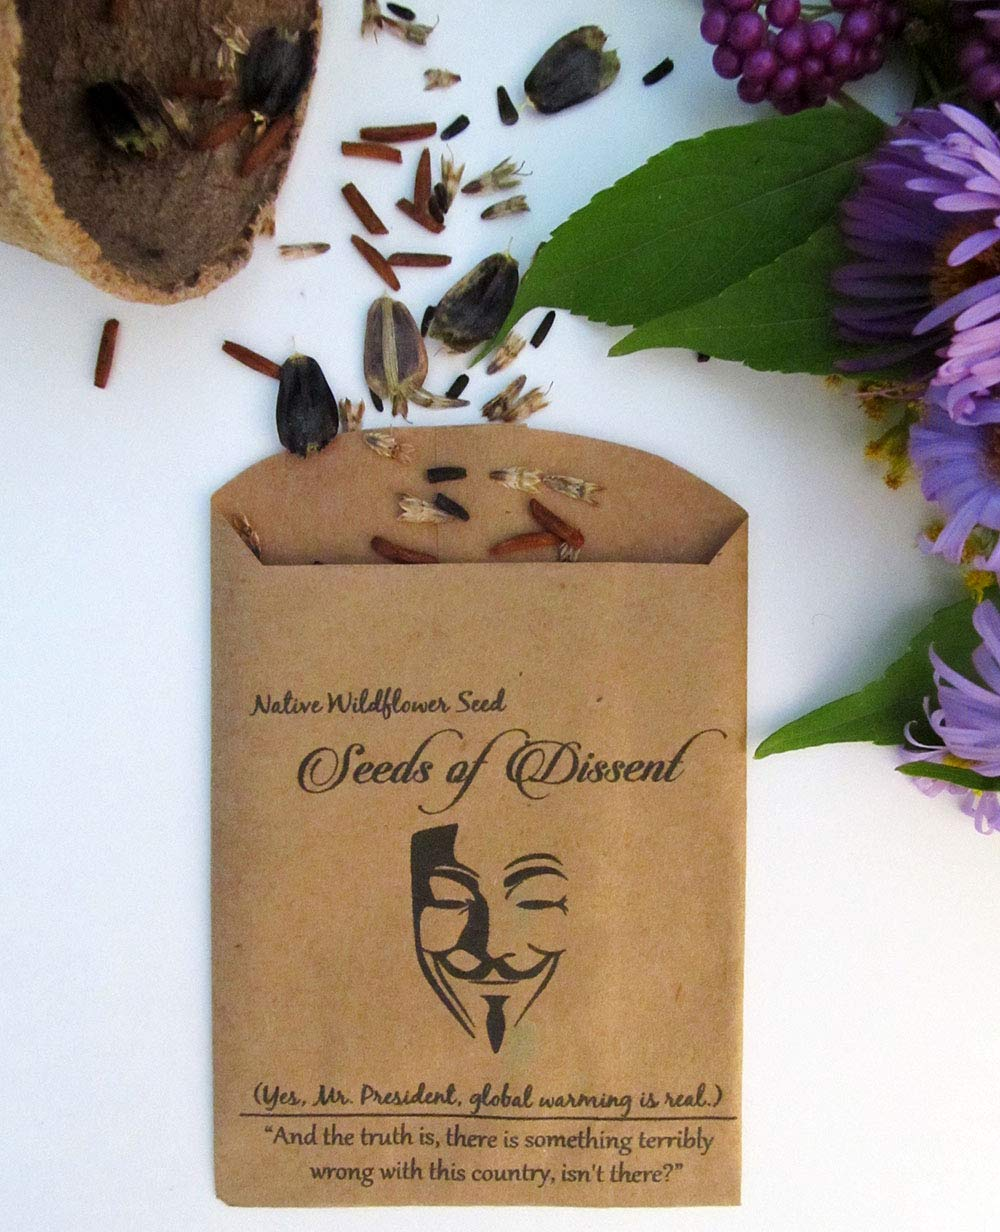 Seeds of Dissent Wildflower Seeds, Not My President Protest Seed, Global Warming Seed Collection, 5 Seed Pack Set, Anonymous Native Flowers